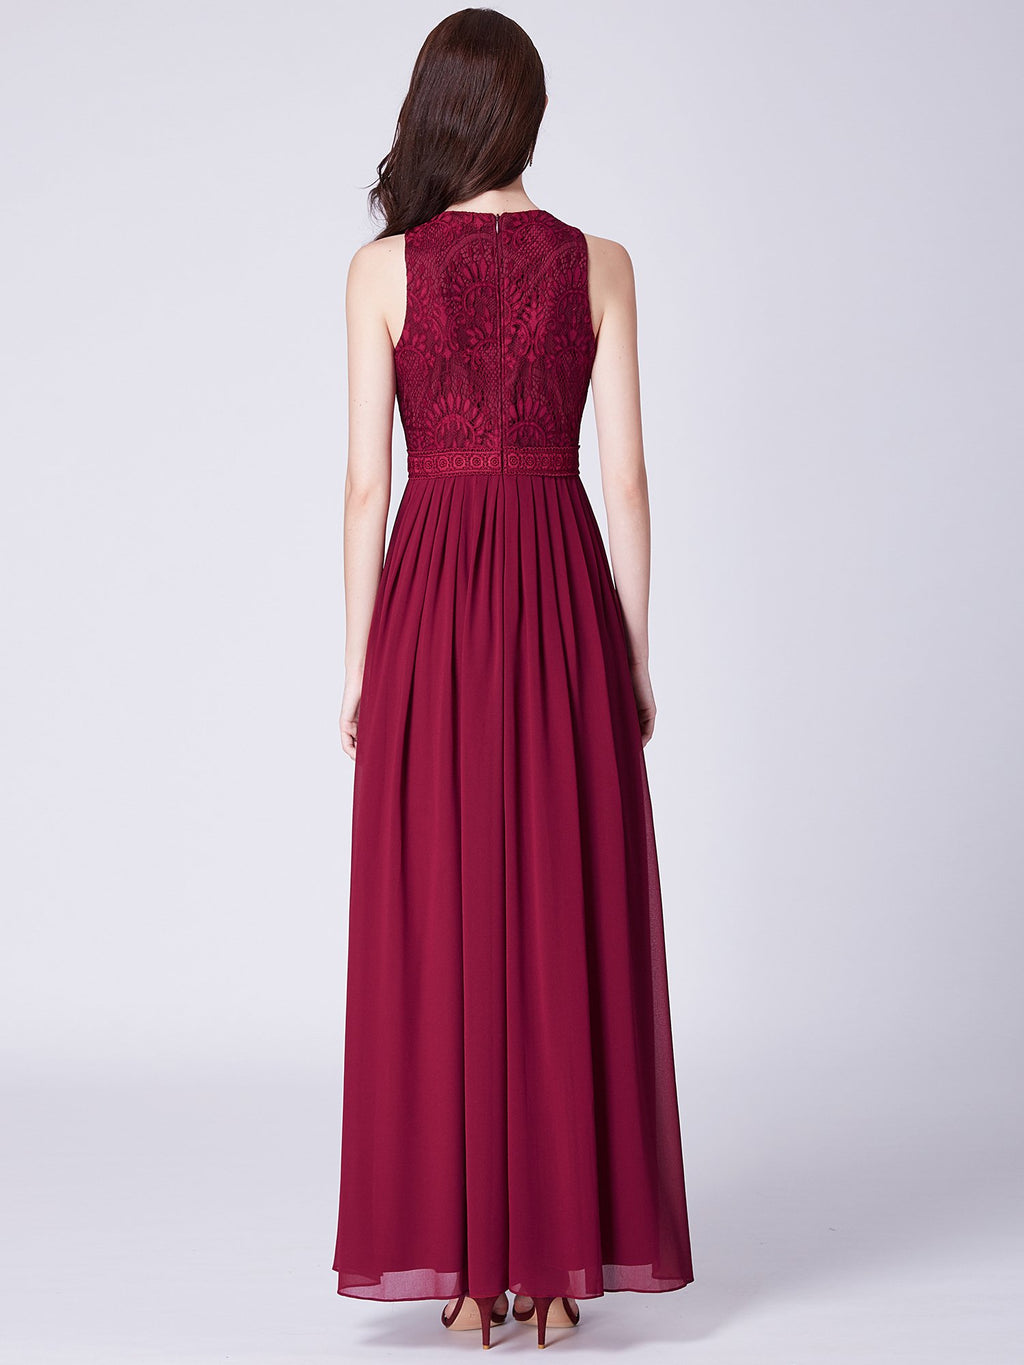 Pleated Long Outstanding Maxi Dress Burgundy